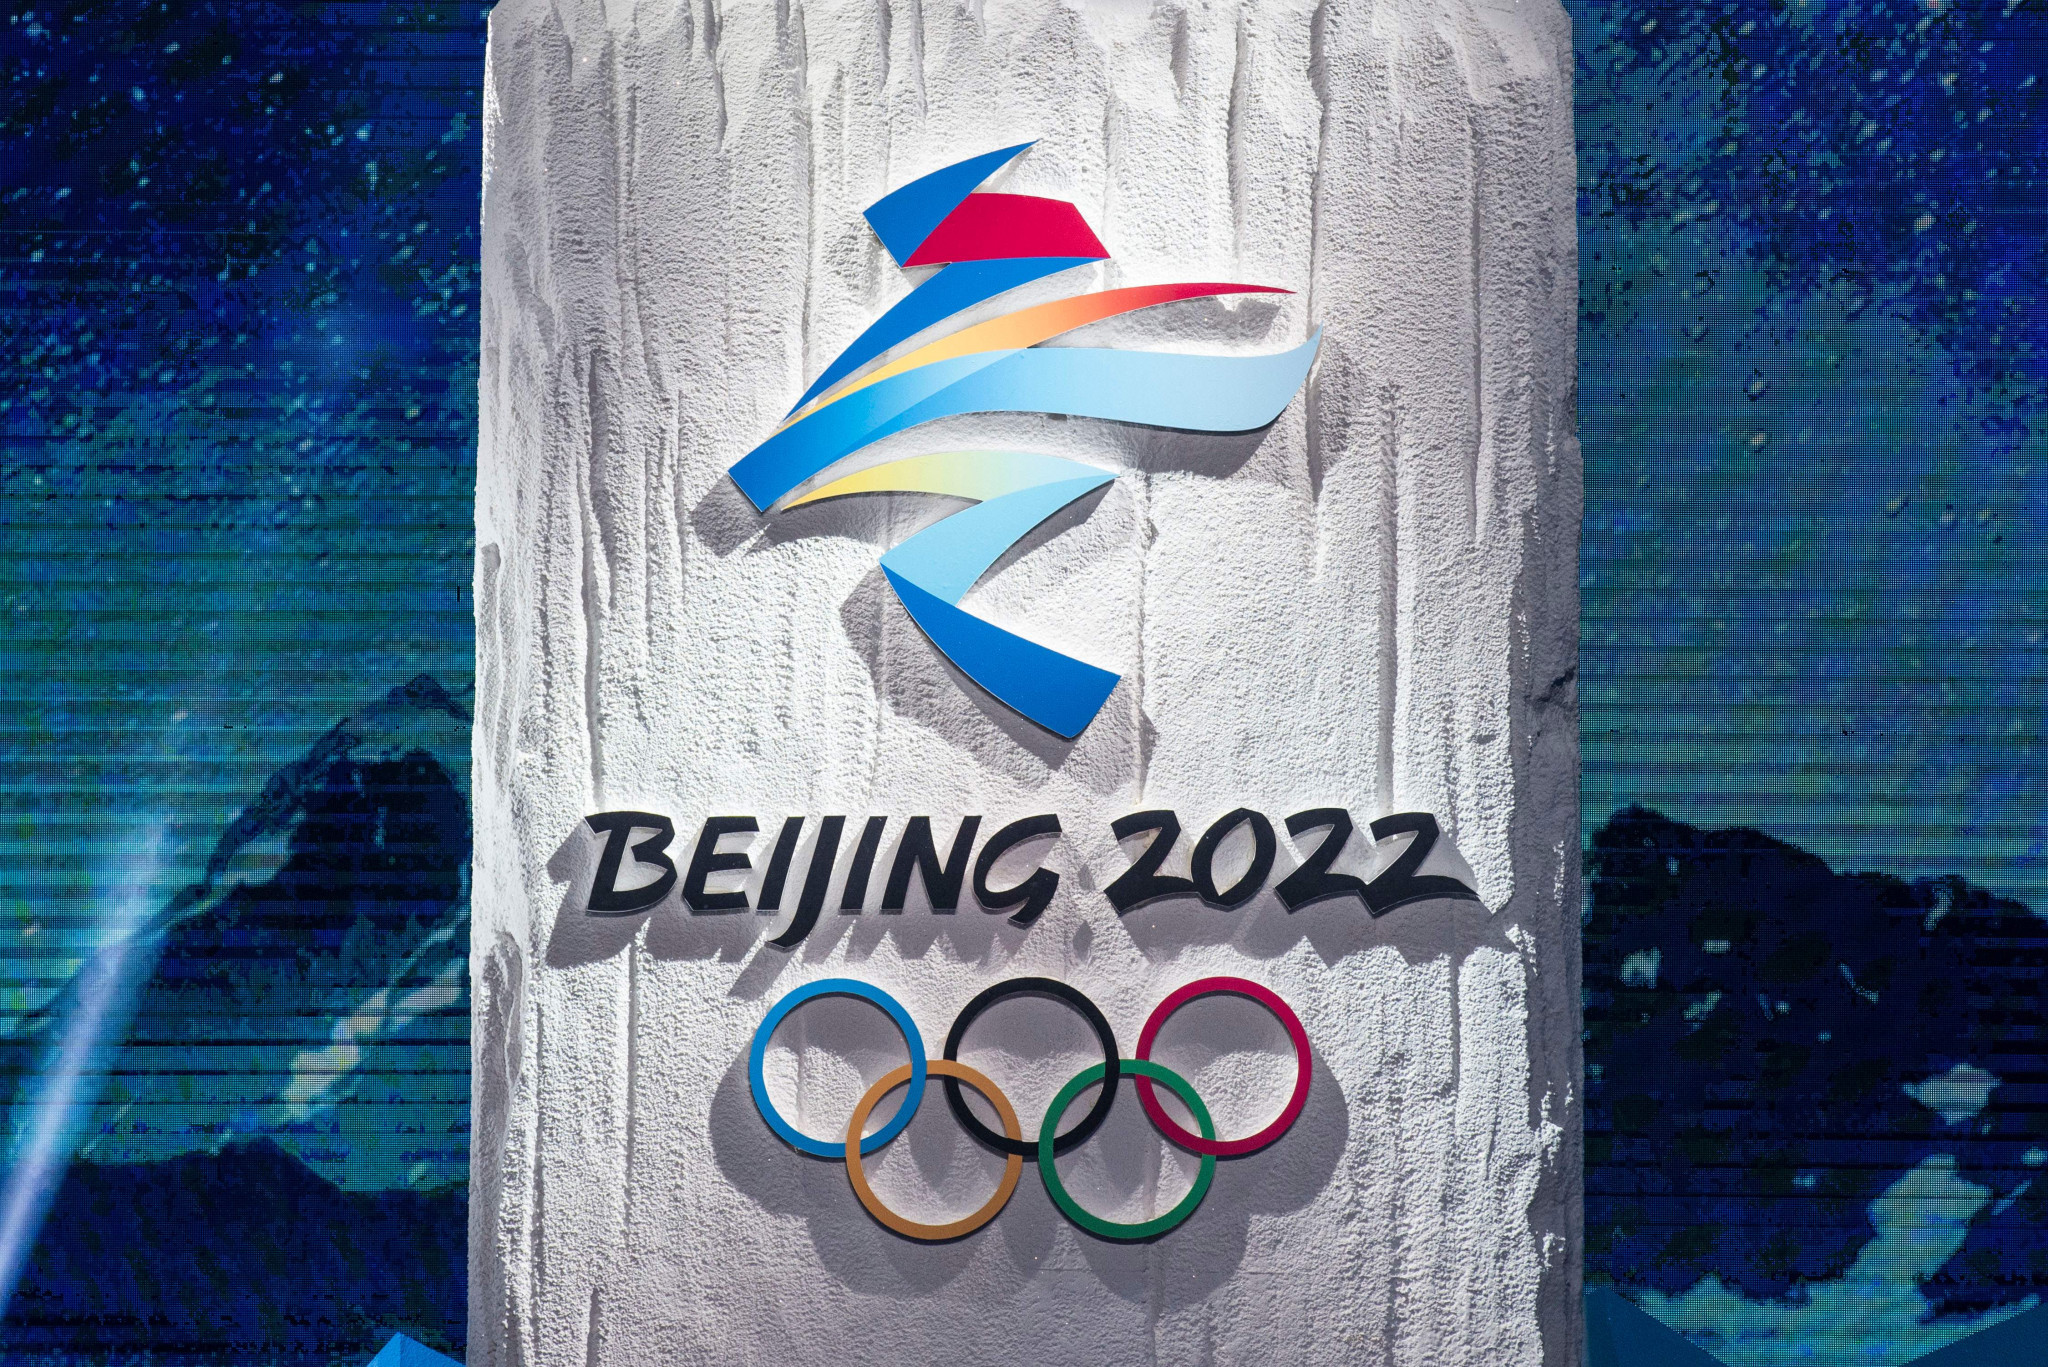 A US Congressional panel has called on the IOC to strip Beijing of the 2022 Winter Olympics because of alleged human rights abuses ©Getty Images